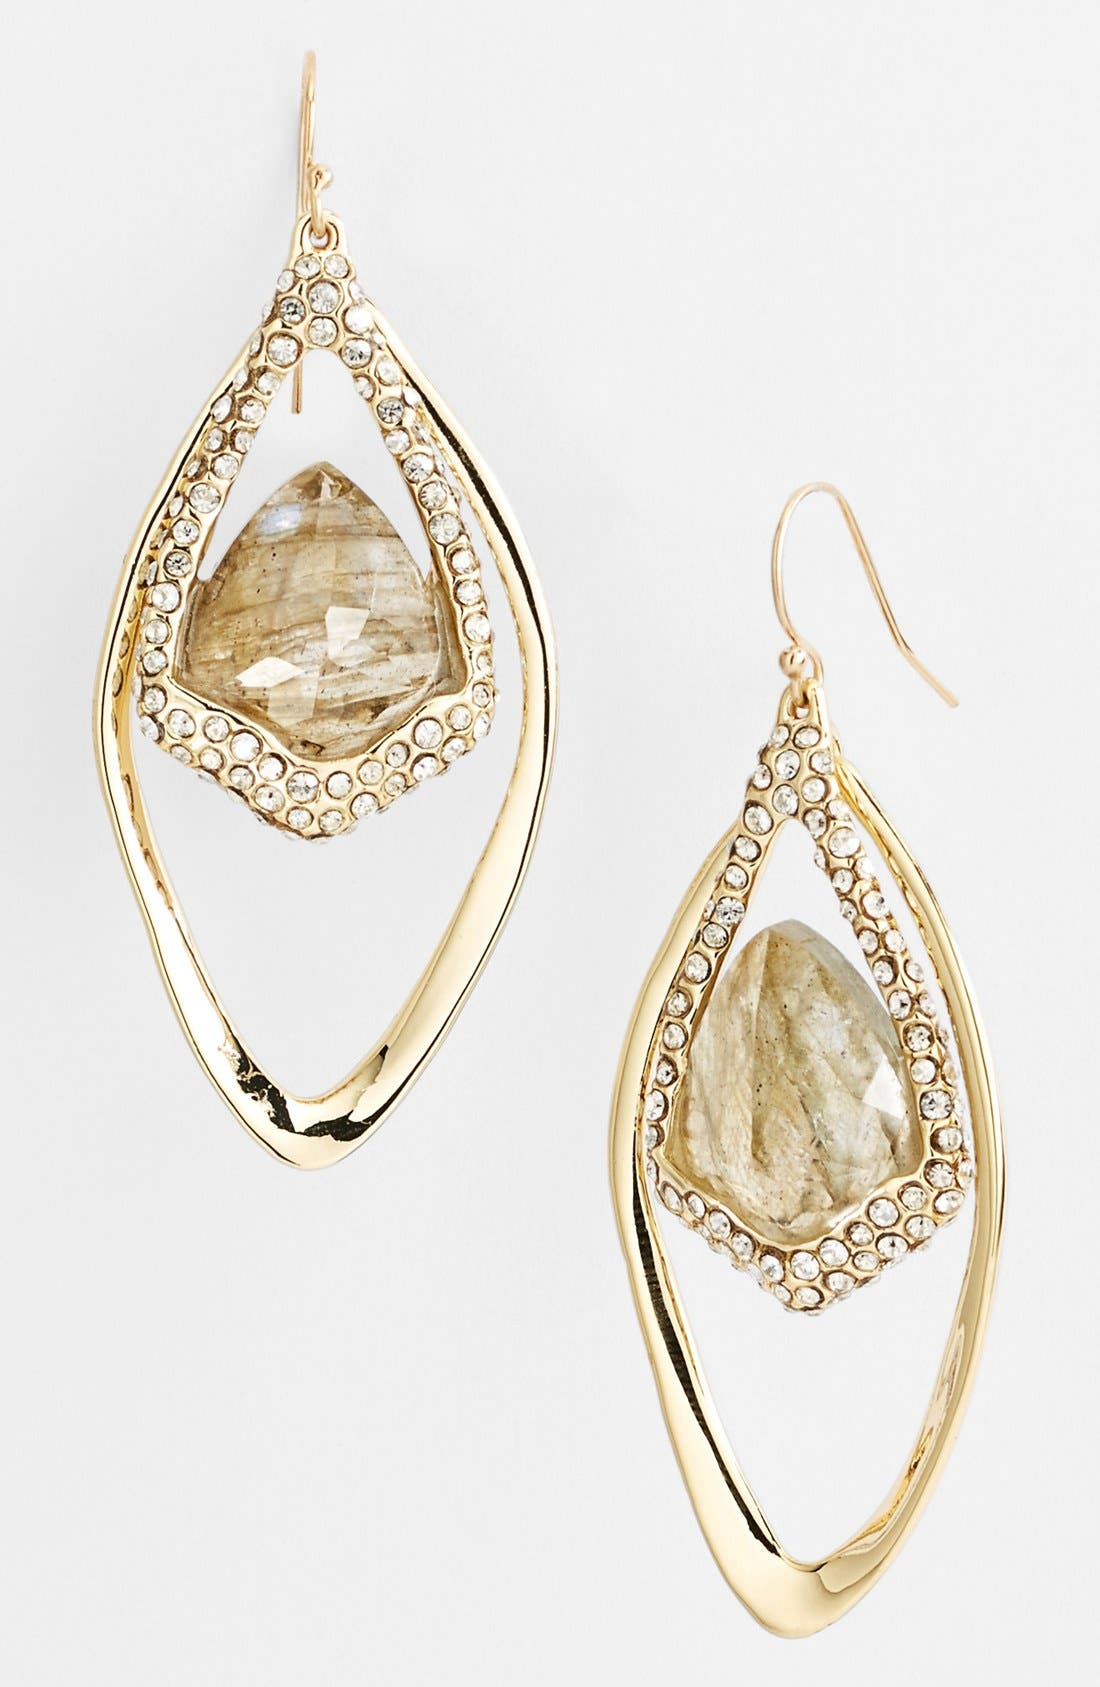 Alternate Image 1 Selected - Alexis Bittar 'Miss Havisham' Orbiting Drop Earrings